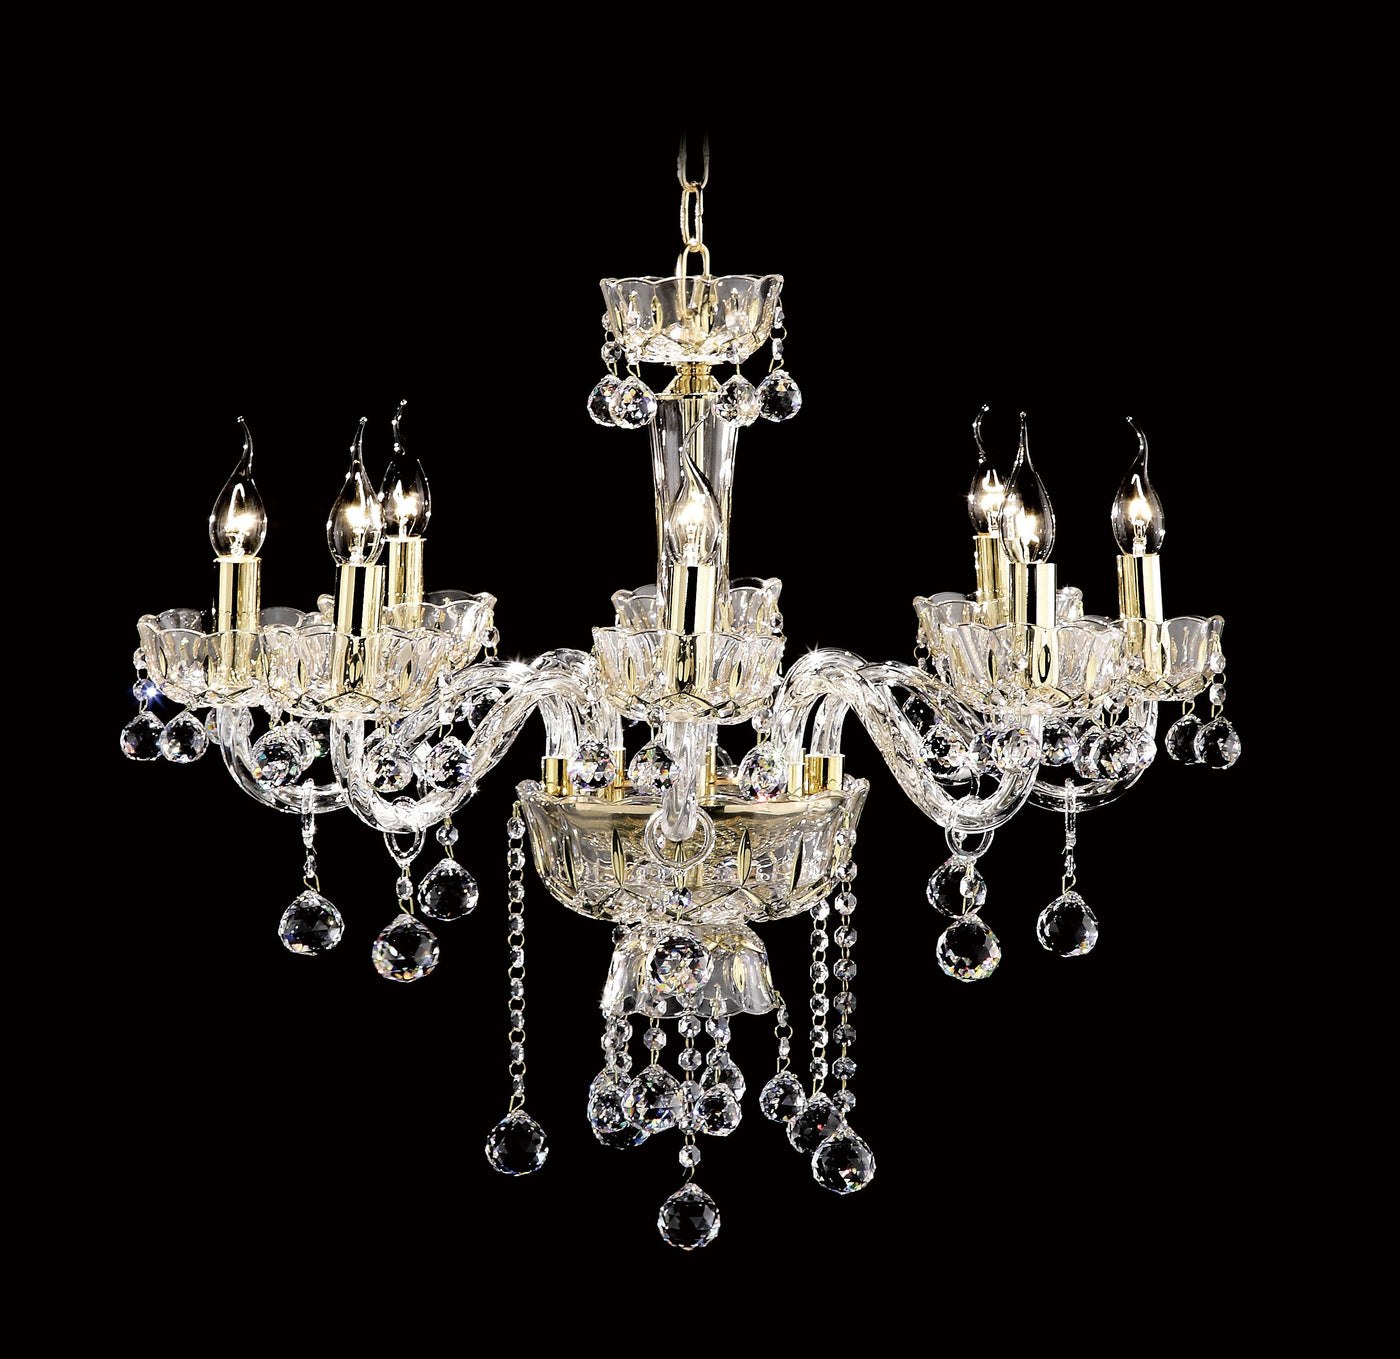 7723 crystal pendant light 30 8 light asfour crystal chandelier 7723 crystal pendant light 30 8 light asfour crystal chandelier 7723 30 8l 702 aloadofball Choice Image